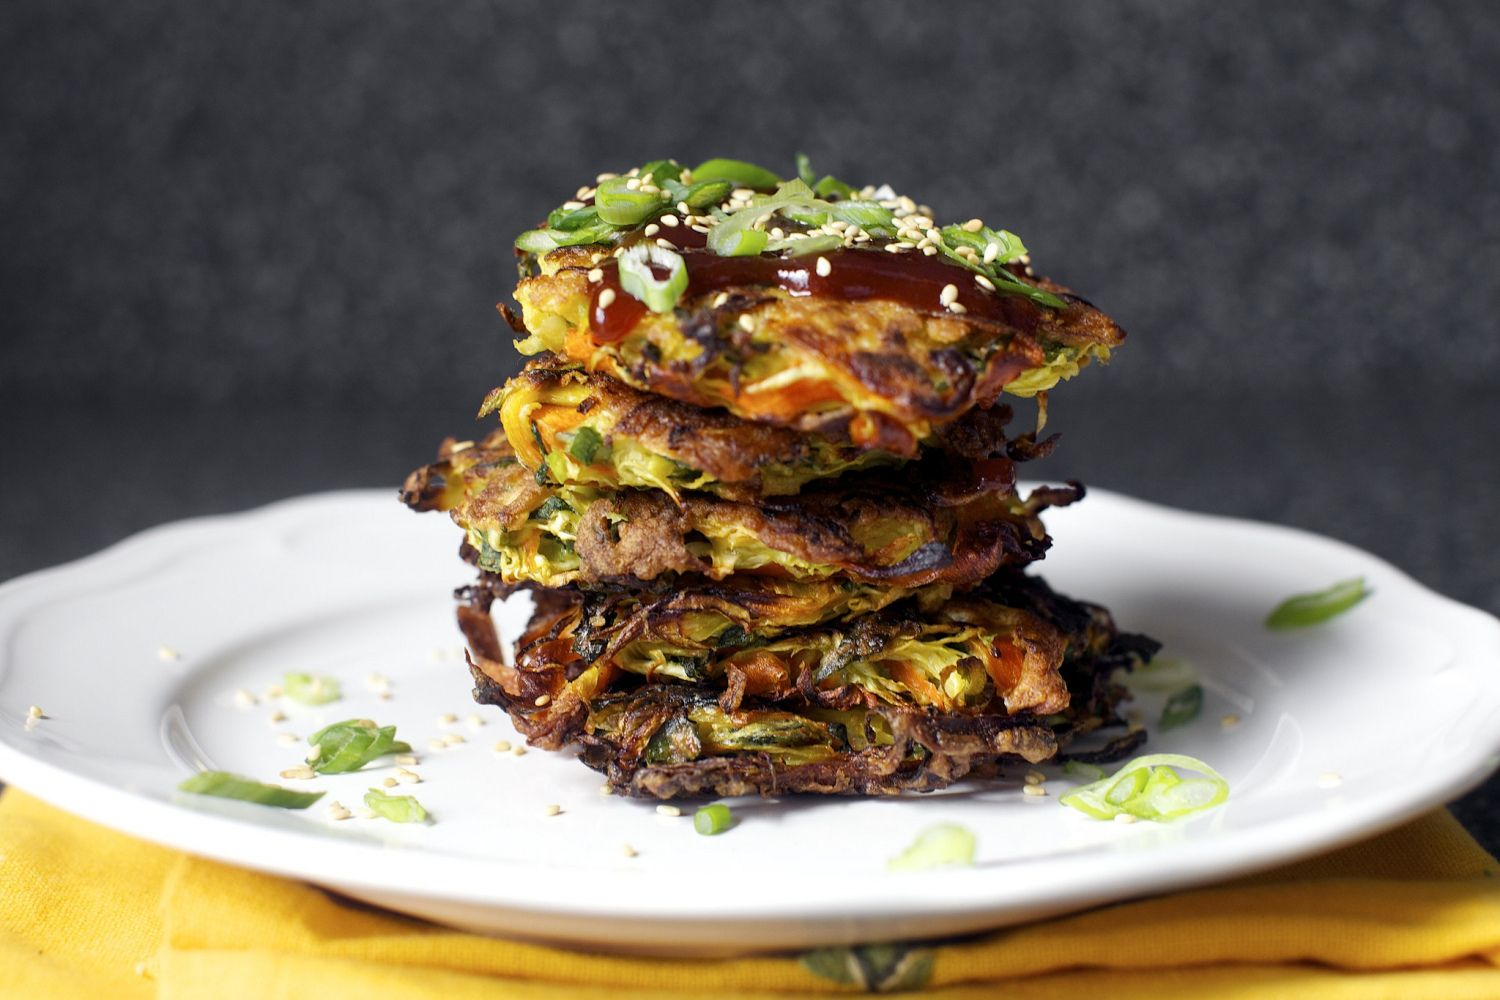 japanese vegetable pancakes – smitten kitchen | recipes | Pinterest ...